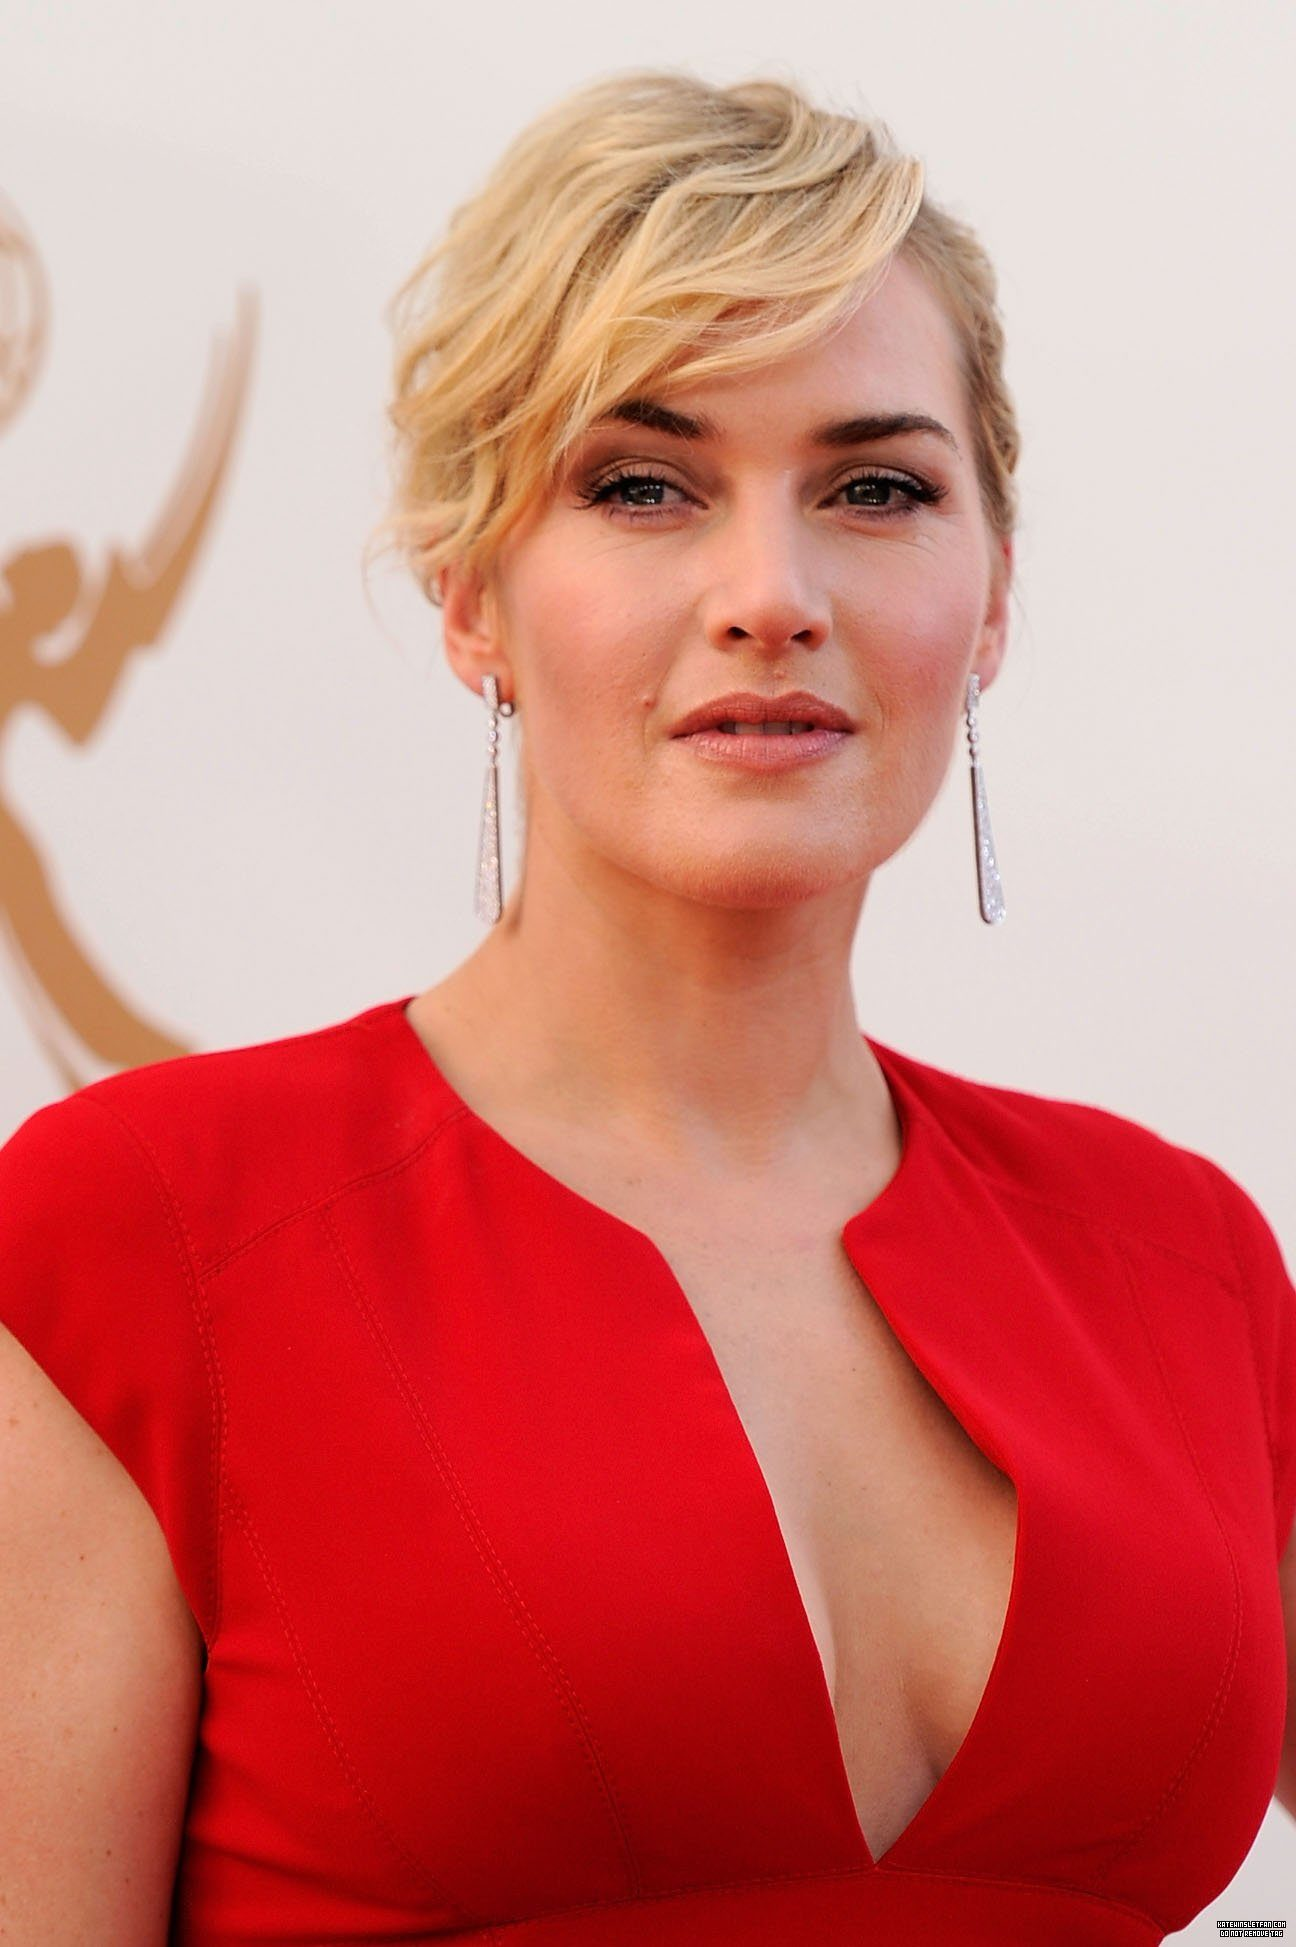 kate-winslet-height-weight-age-bra-size-ars-body-status-bollywoodfox-2